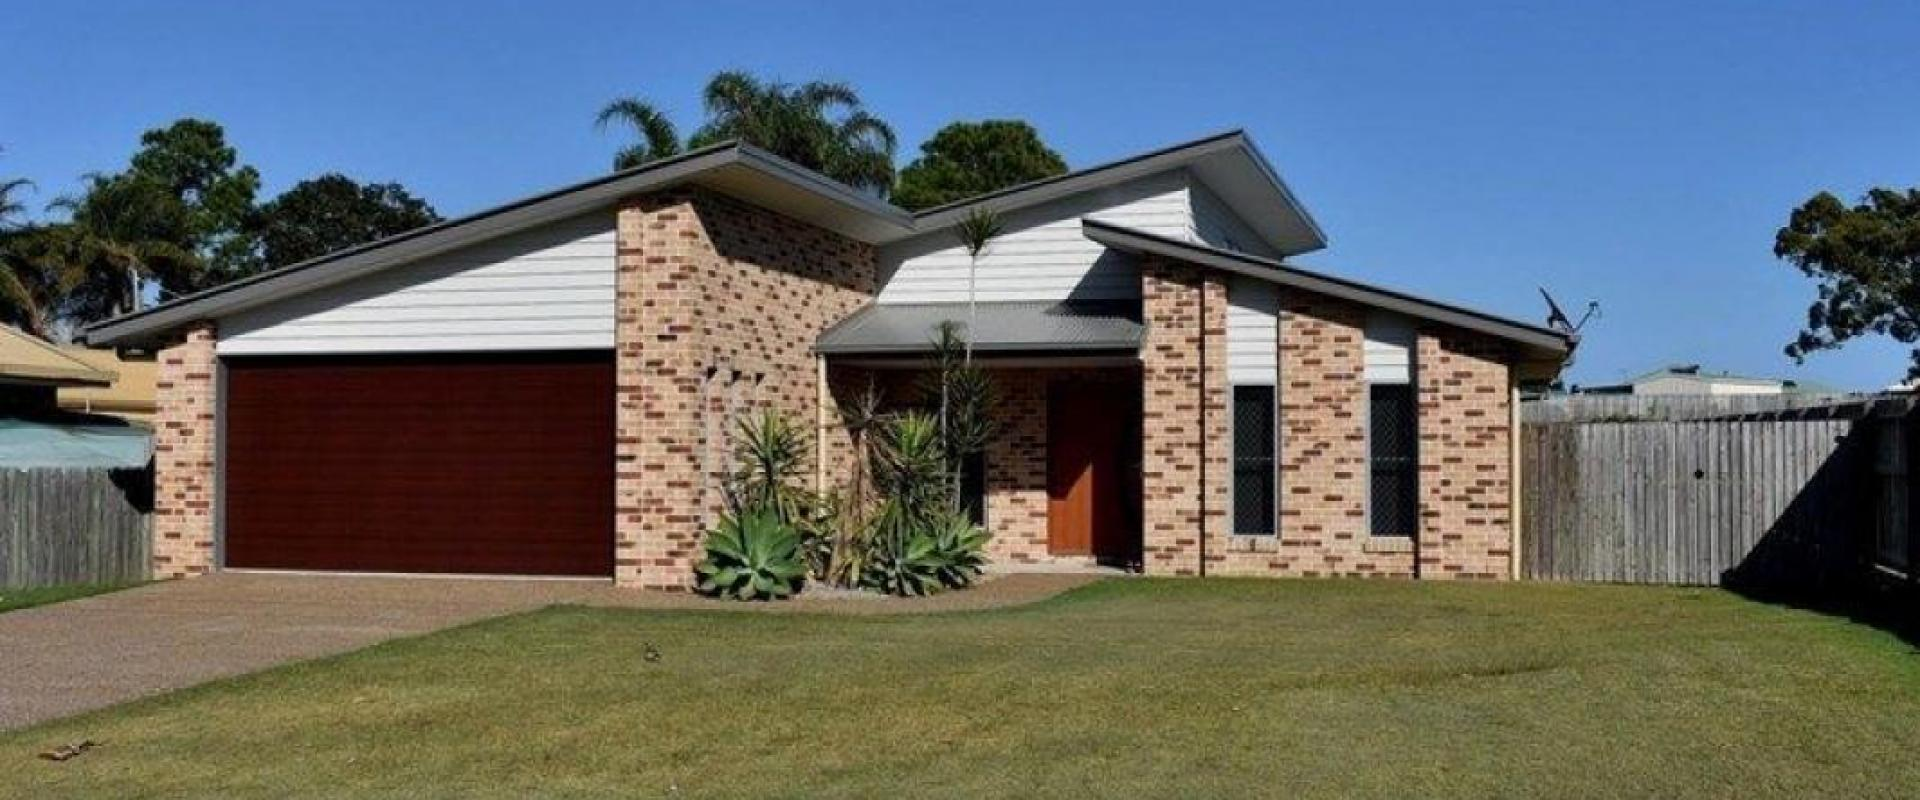 DOUBLE ACCESS TO THIS PROPERTY, SNAPPER STREET & BREAM STREET, IDEAL IF YOU NEED TO PARK ADDITIONAL VEHICLES OR EVEN BUILD A LARGE SHED OR ANNEXE STCA